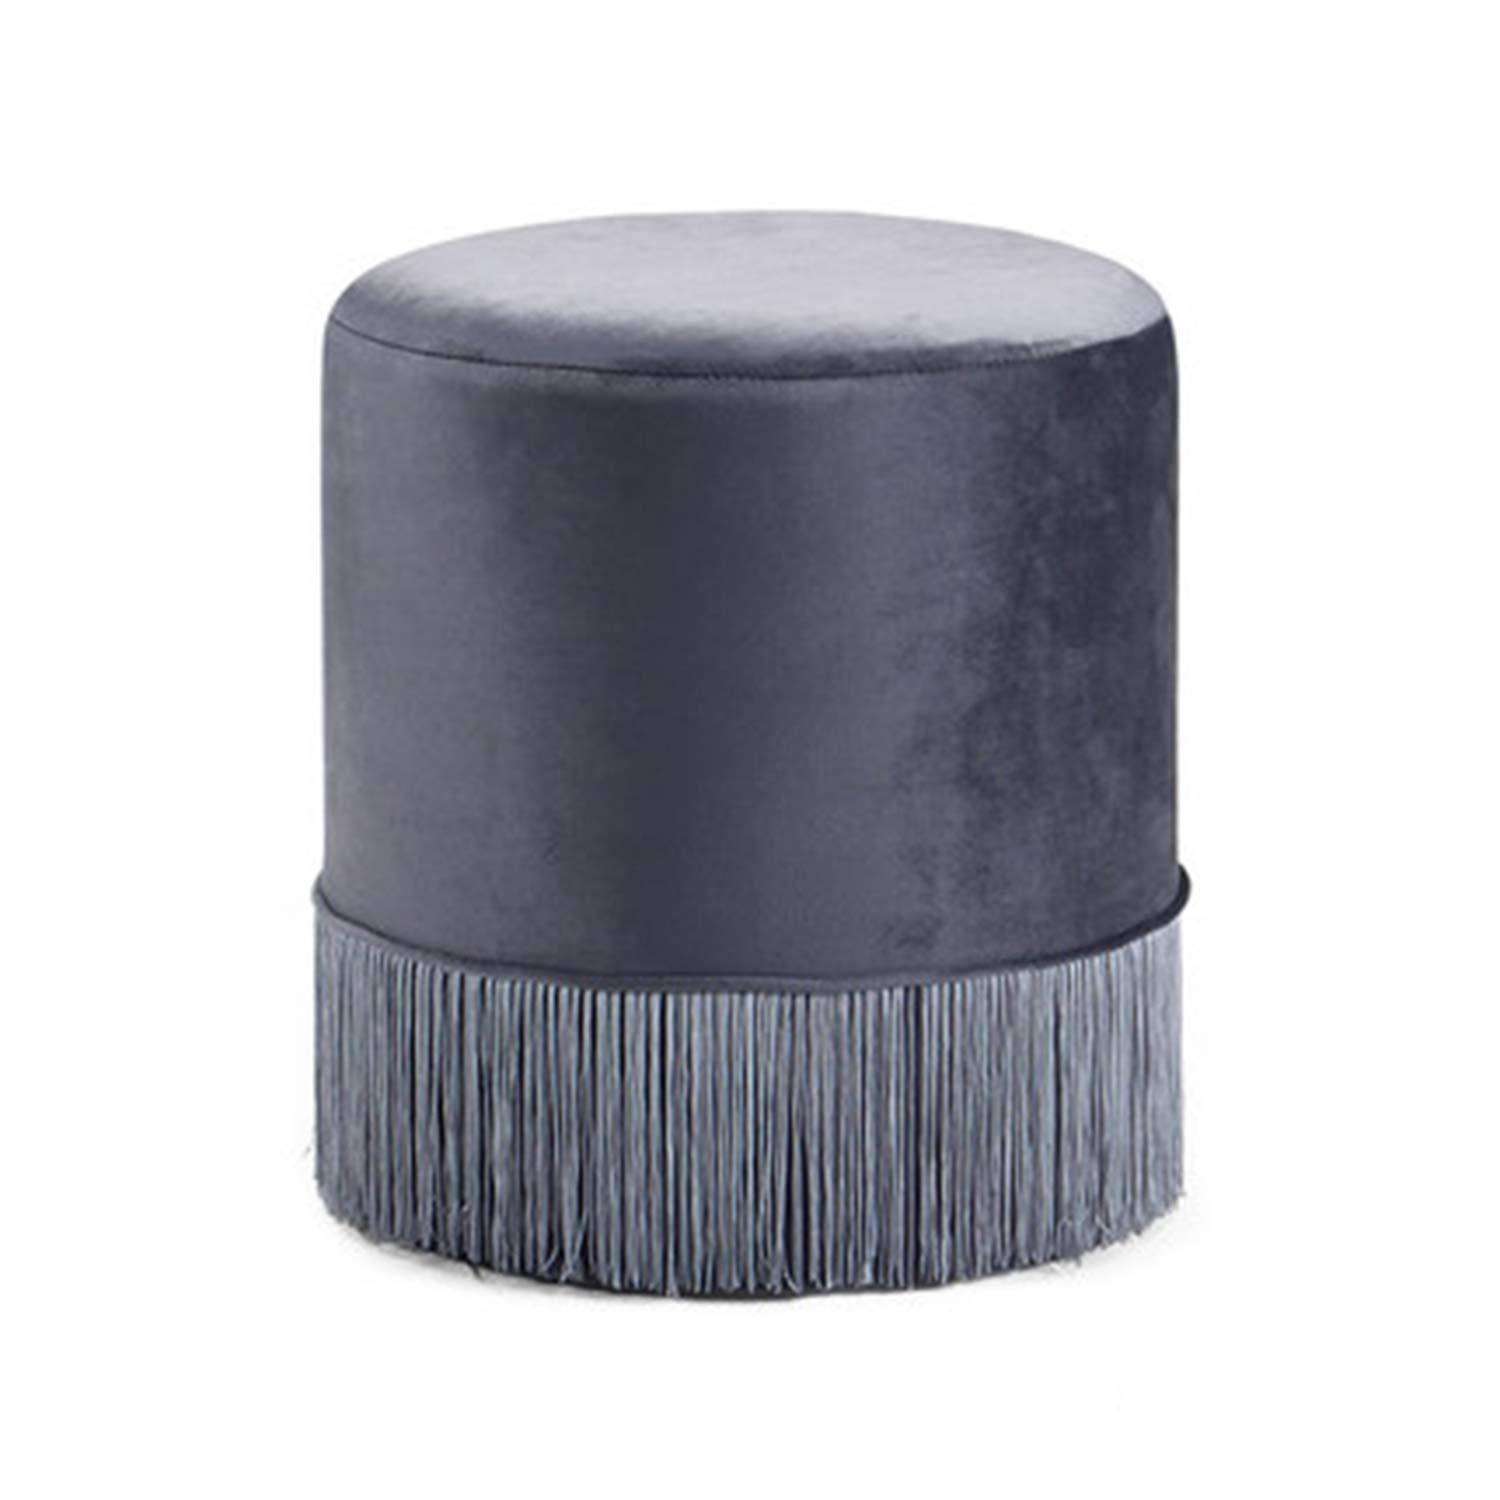 QYQCX Bright Color Shoe Bench, Tassel Footstool, Simple Dressing Stool, Ottoman Gray